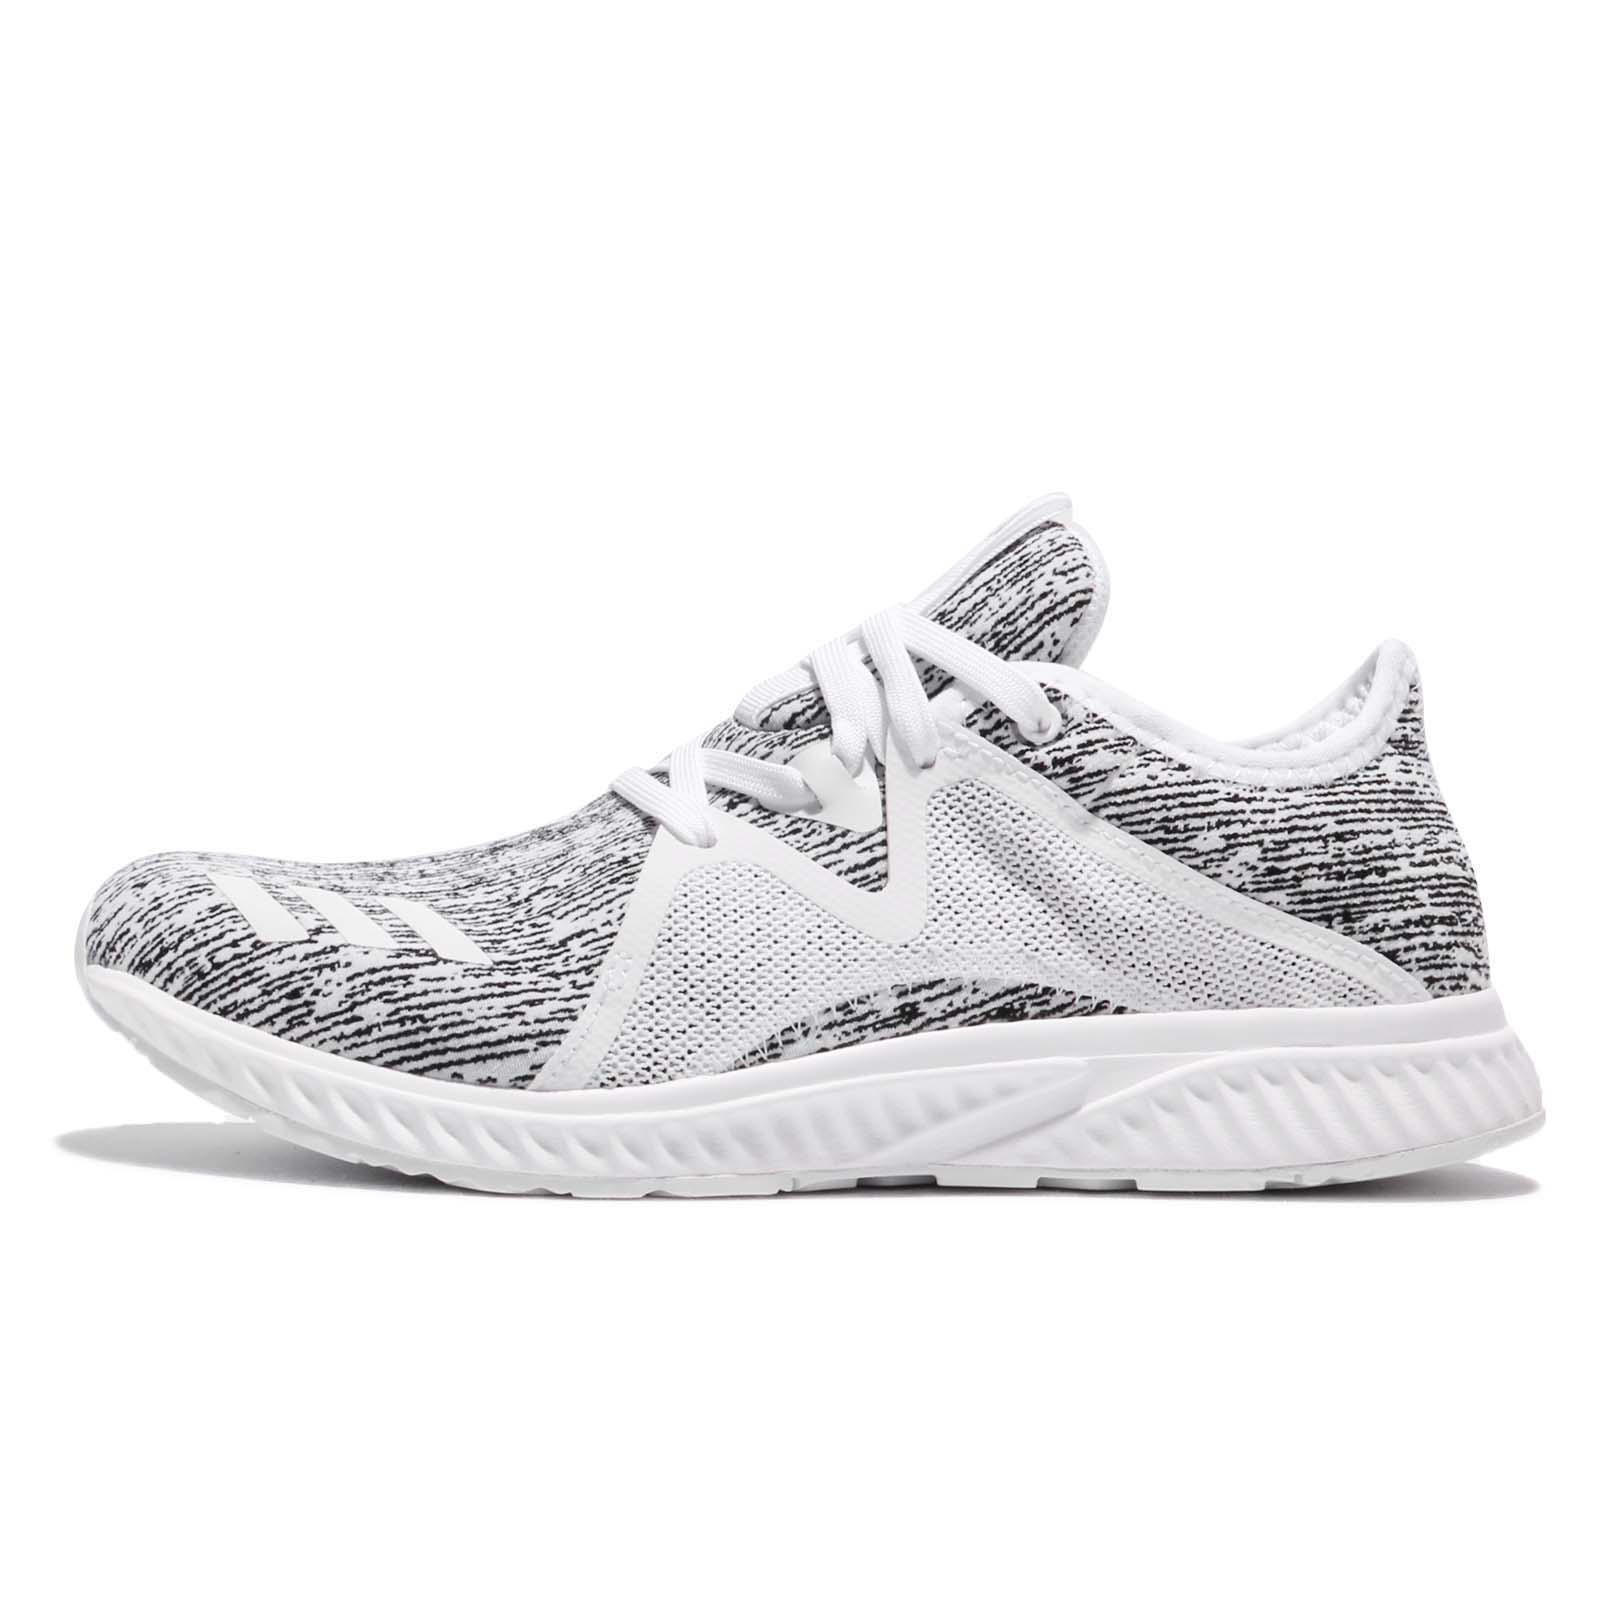 d0fcc87644d adidas Edge Lux 2 II White Black Women Running Shoes Sneakers Trainers  BY4563